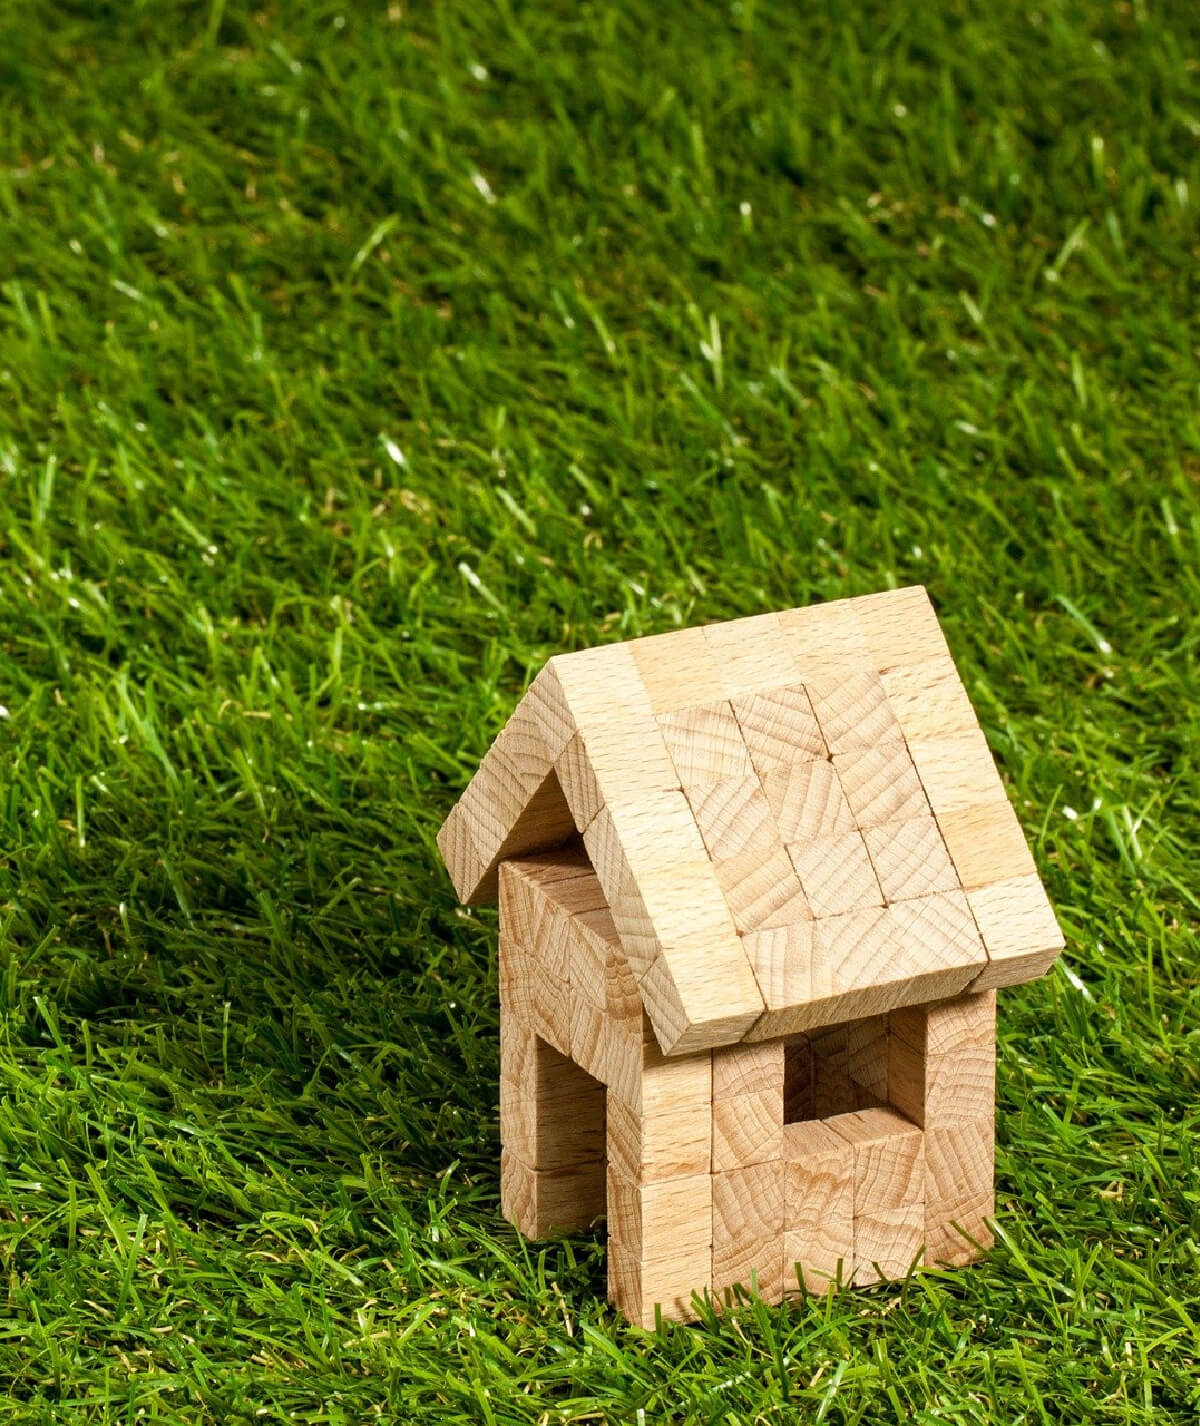 The Plight Of The First Time Home Buyer